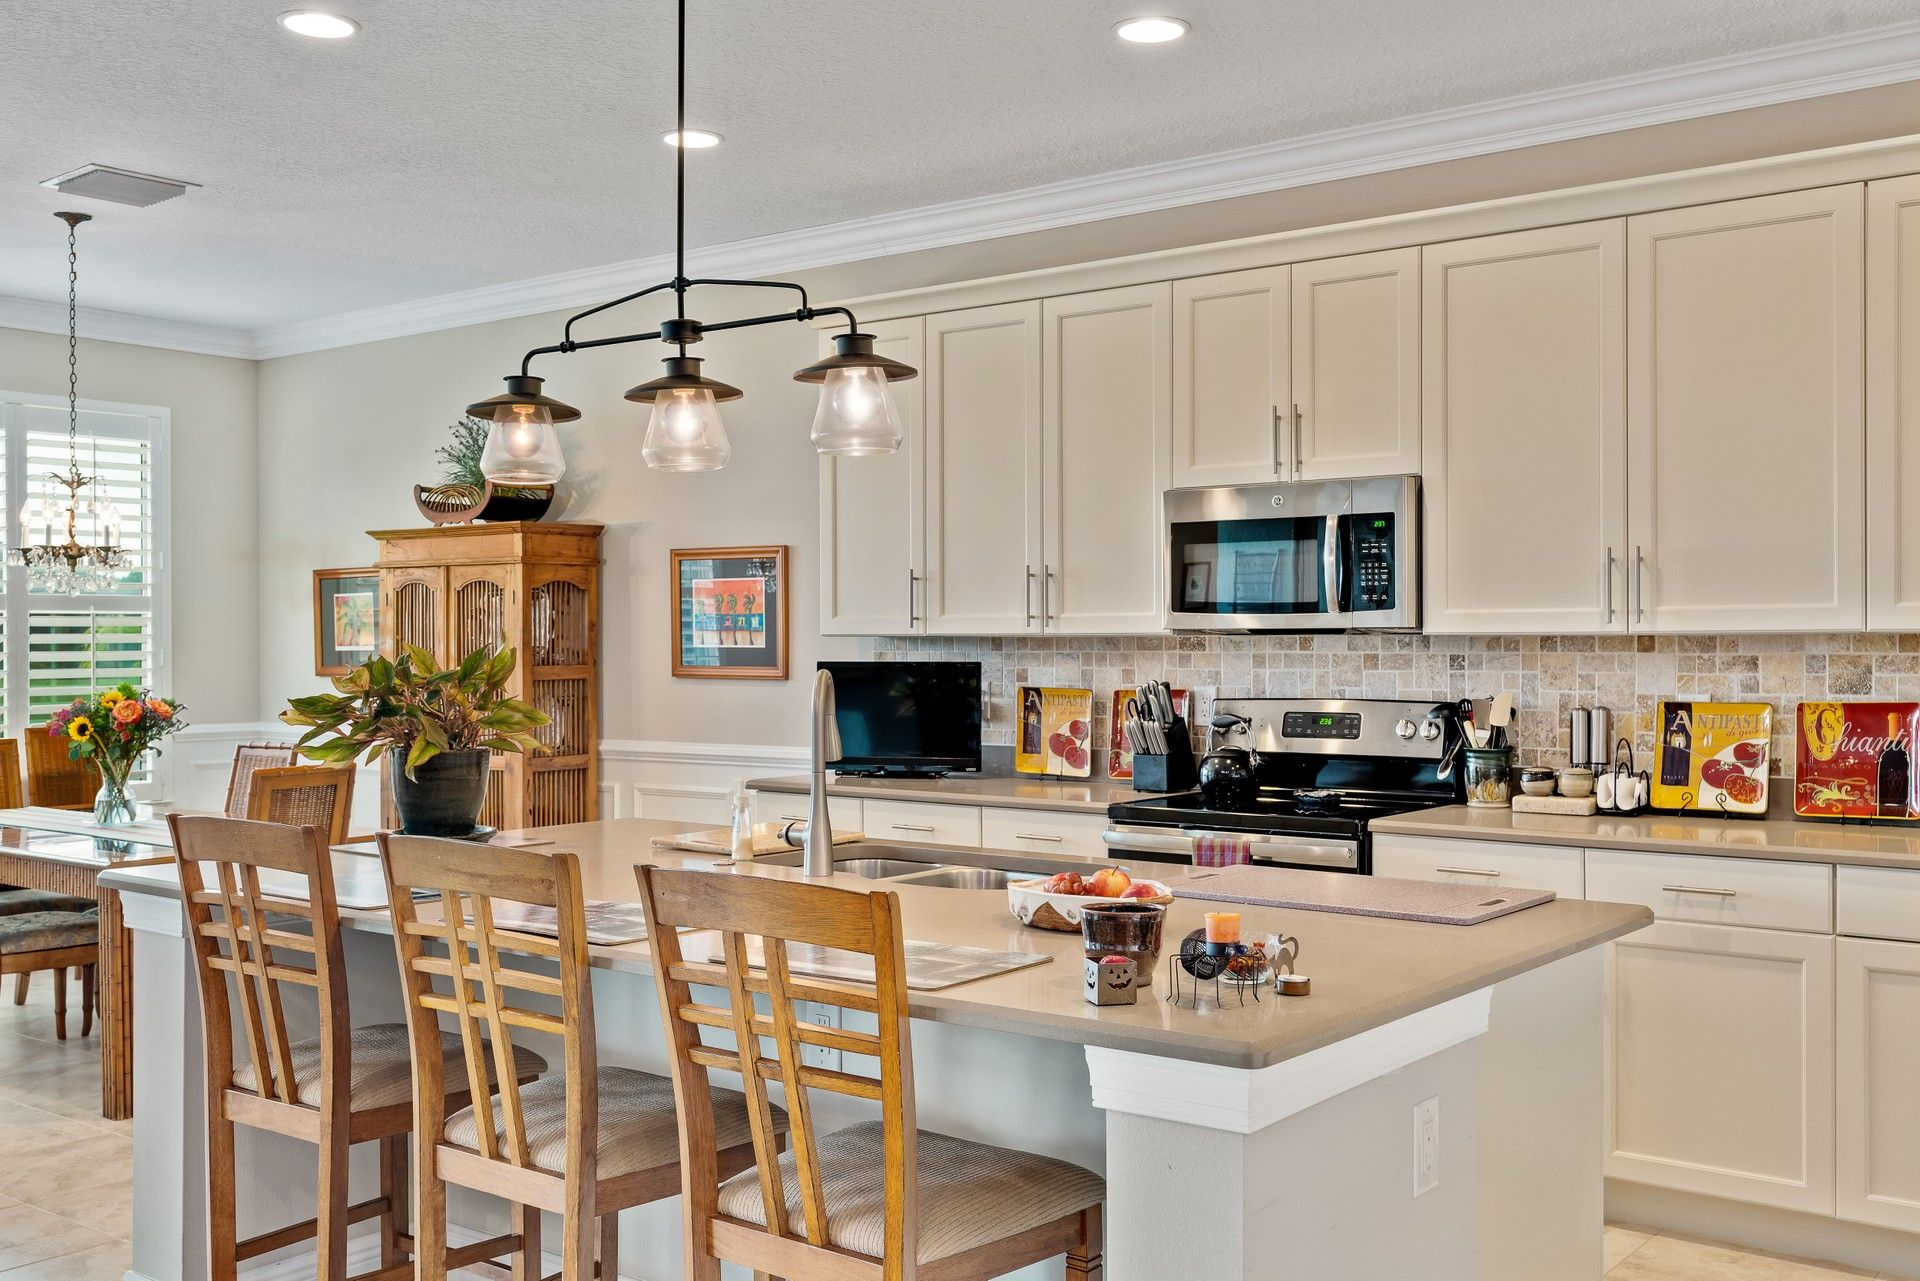 Kitchen of your Dreams Home, Bright kitchens, Home decor